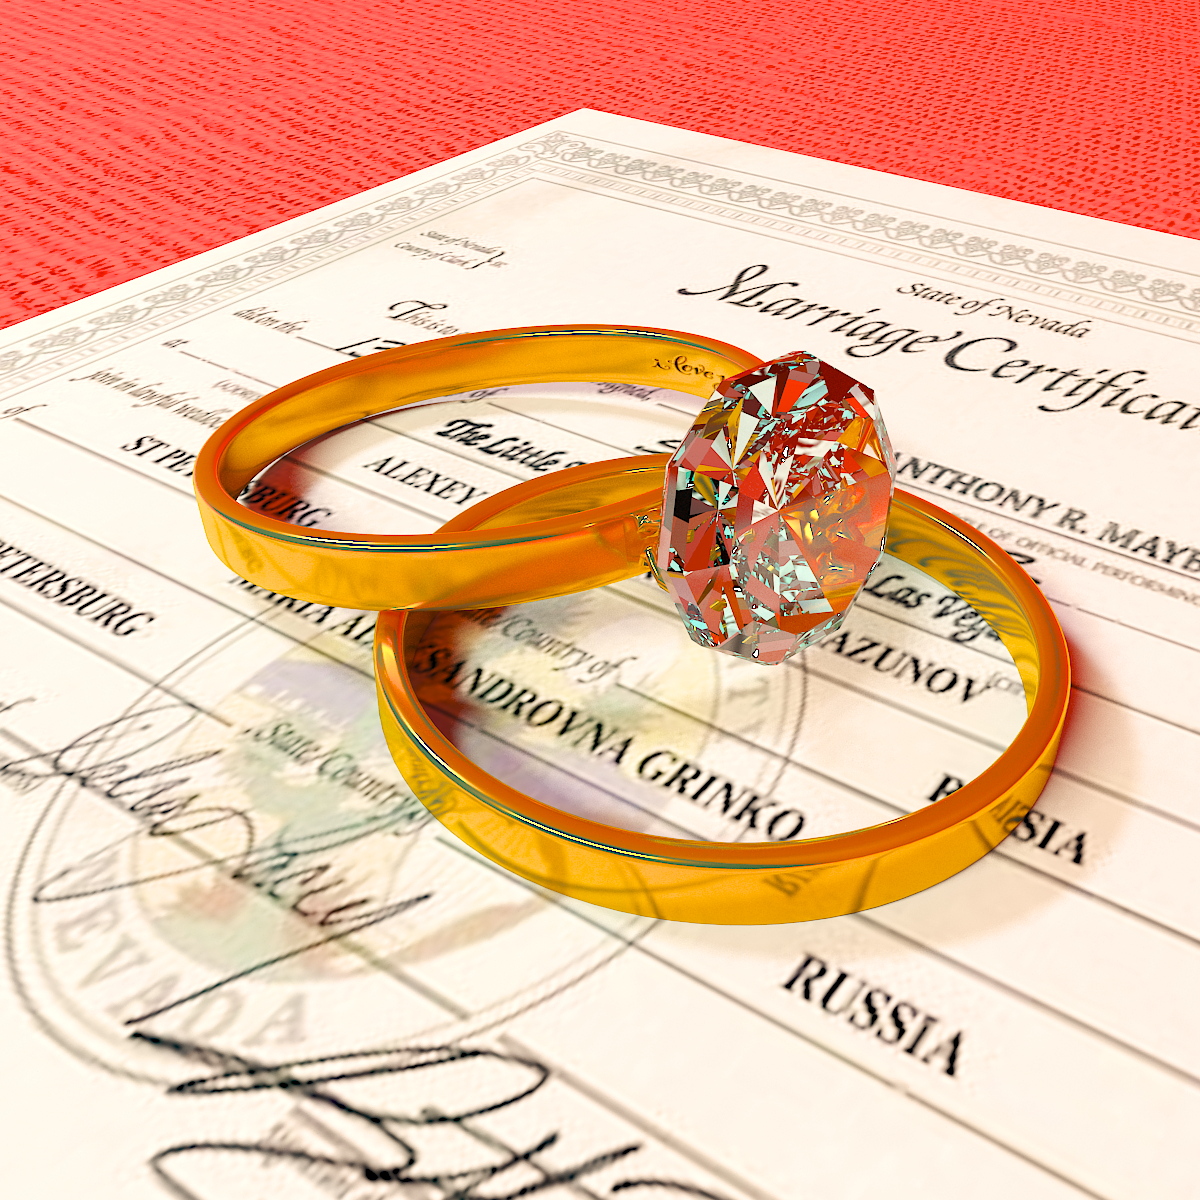 wedding rings in 3d max vray 3.0 image